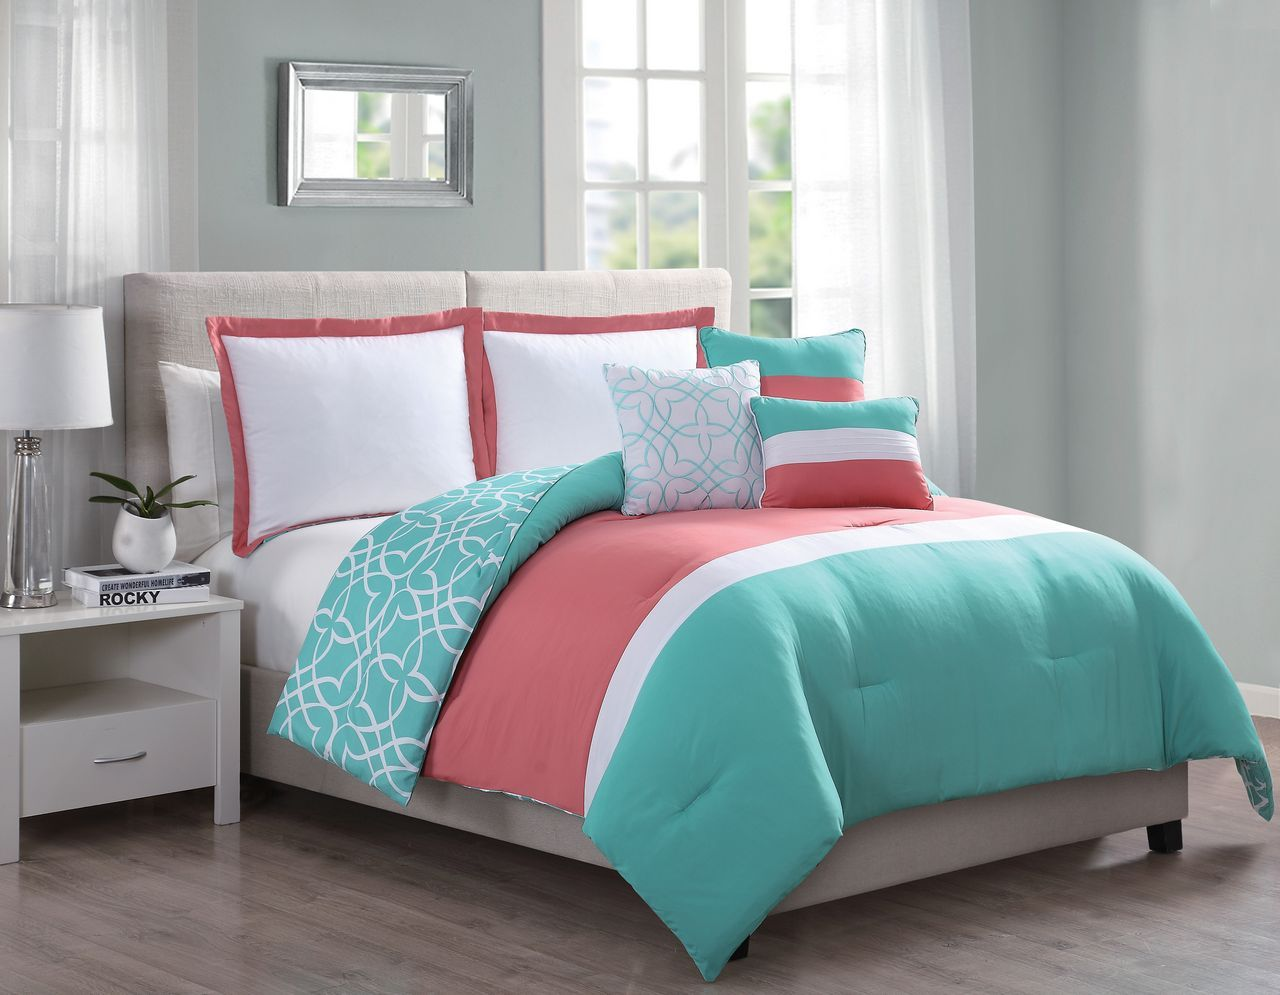 Coral And Mint Full Size Bedding Sets Teal And Coral Bedding